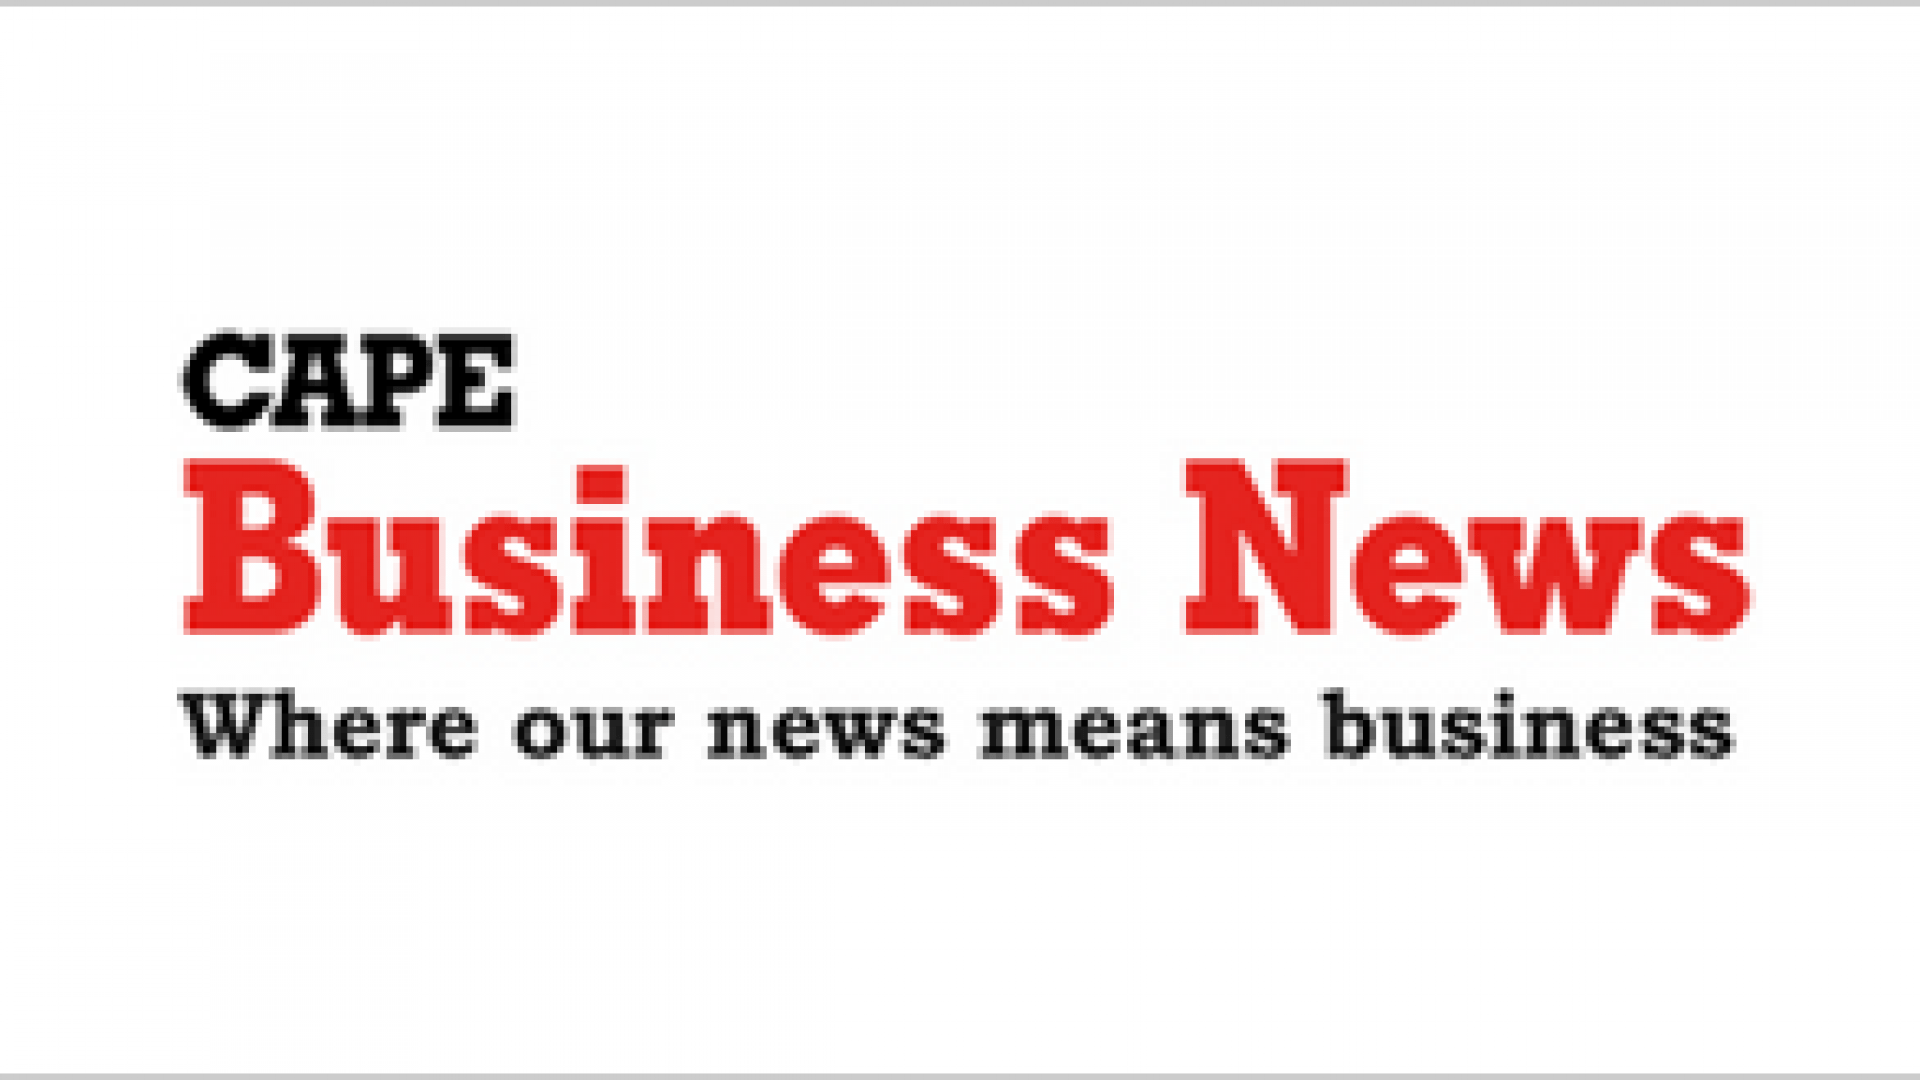 Cape Business News